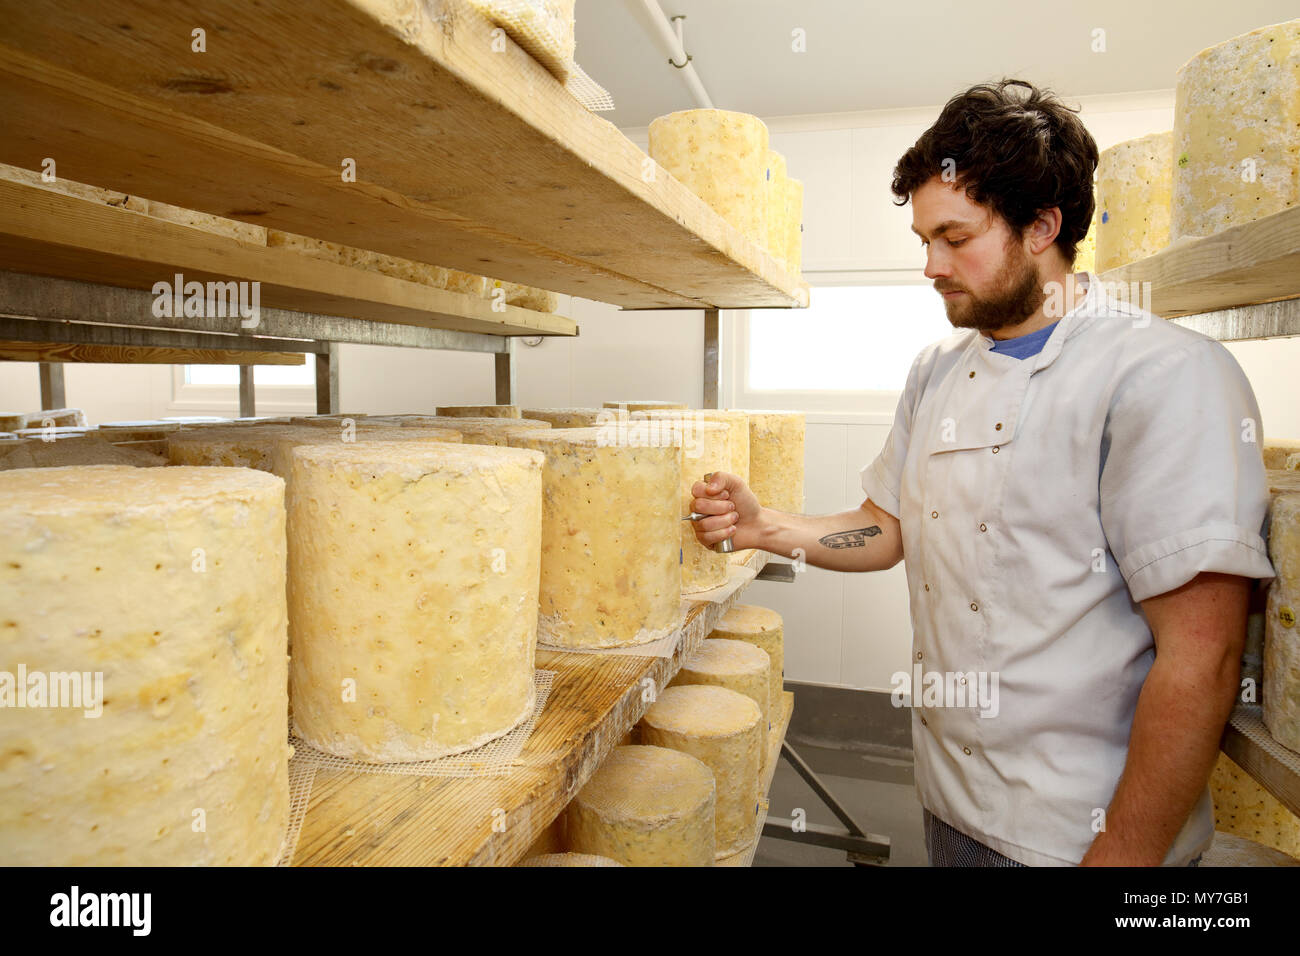 Cheese maker inspecting stilton cheese wheel by using a corer to check blue mould forming inside - Stock Image